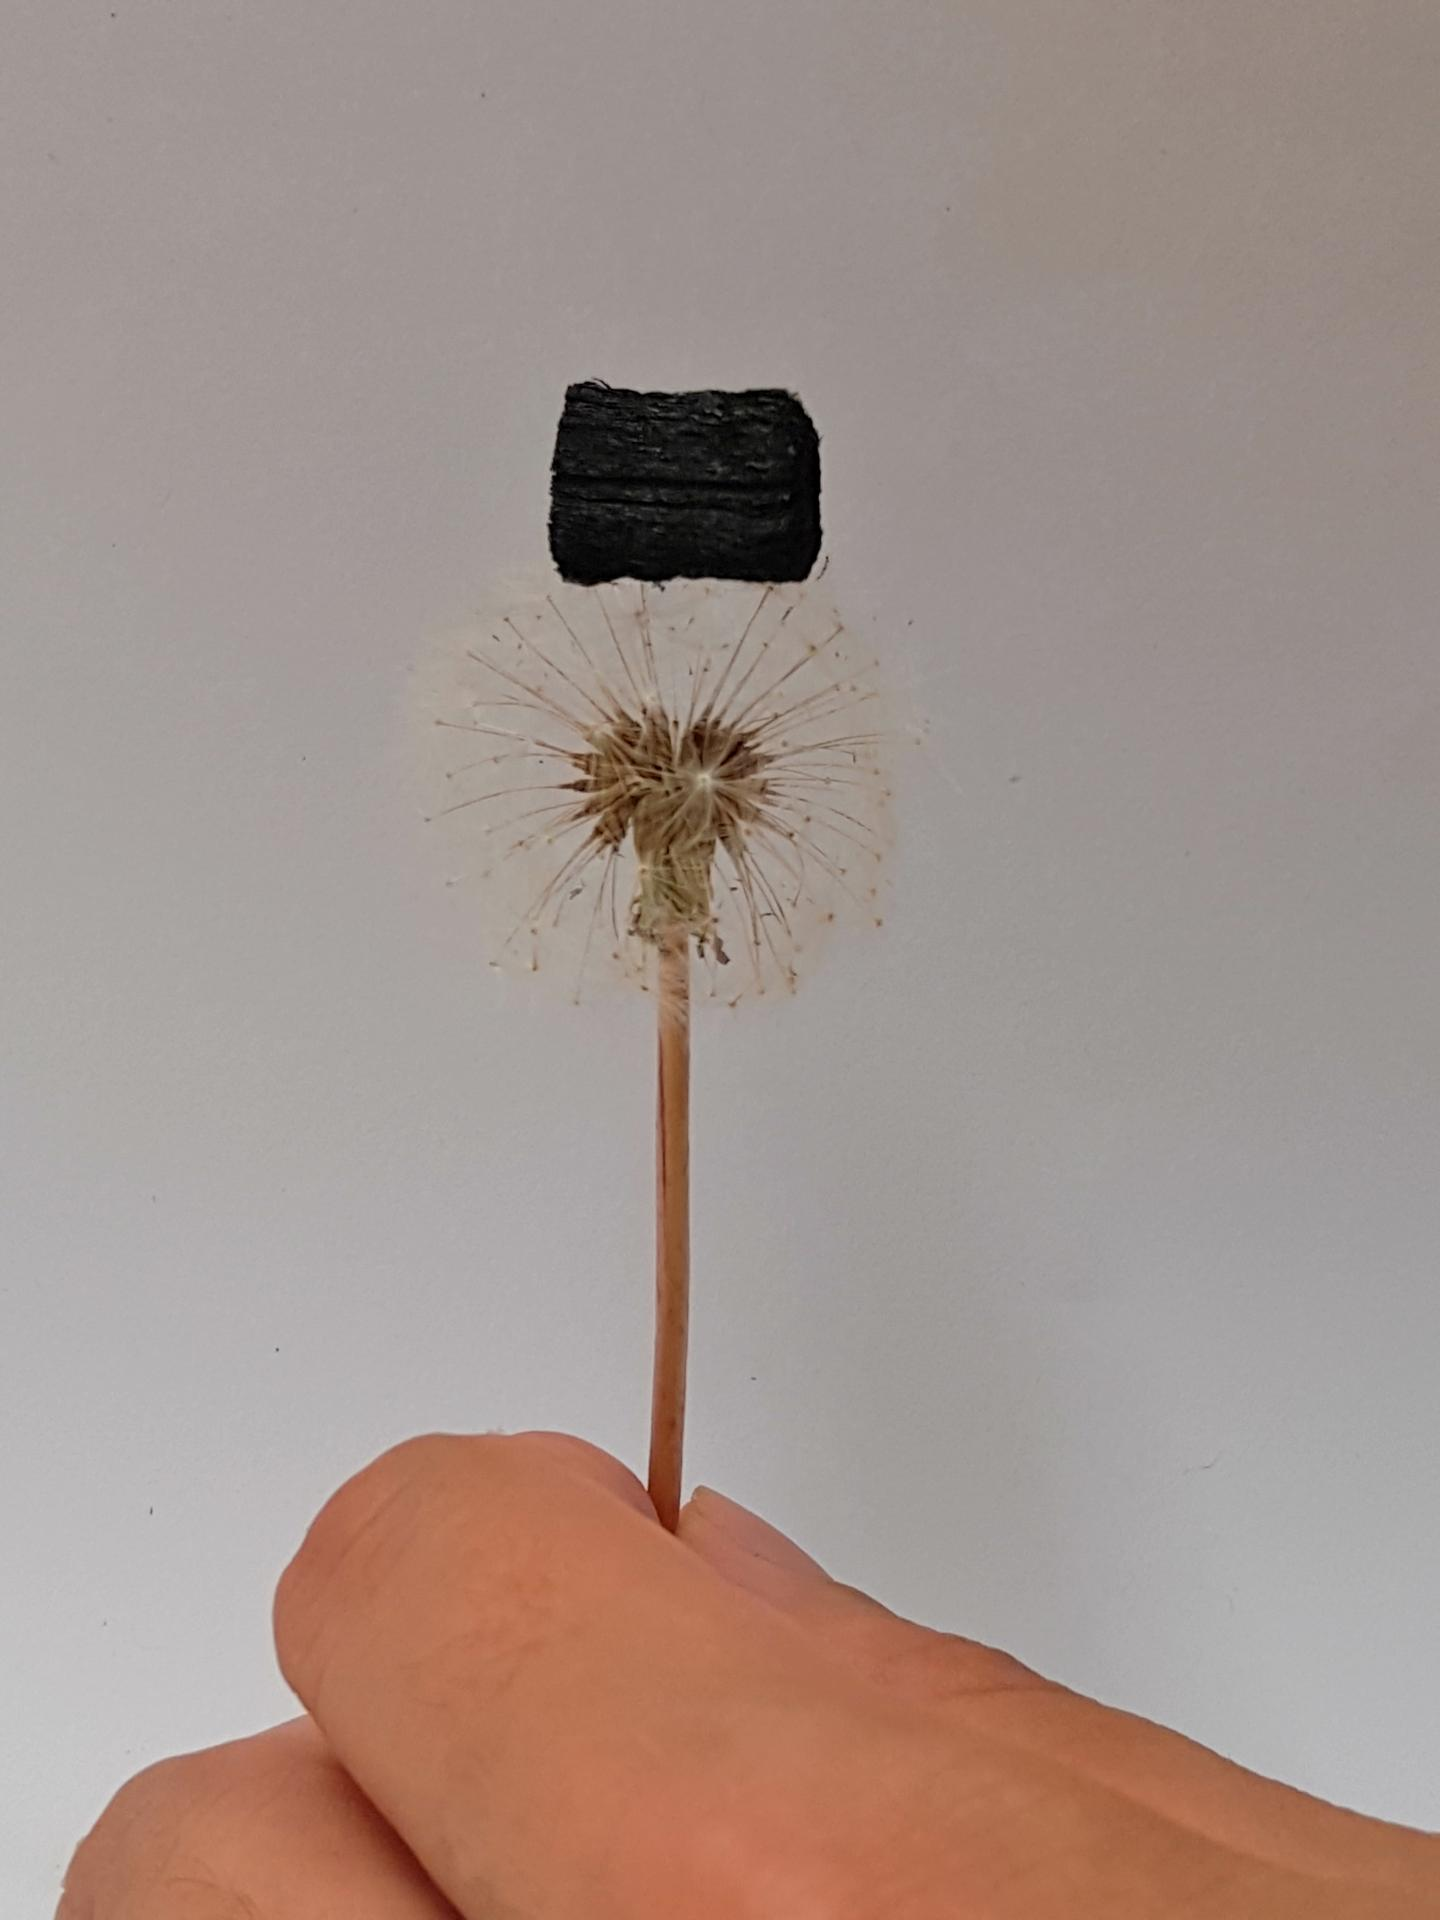 Image: A single wood carbon sponge is light enough to balance atop a dandelion seed head.